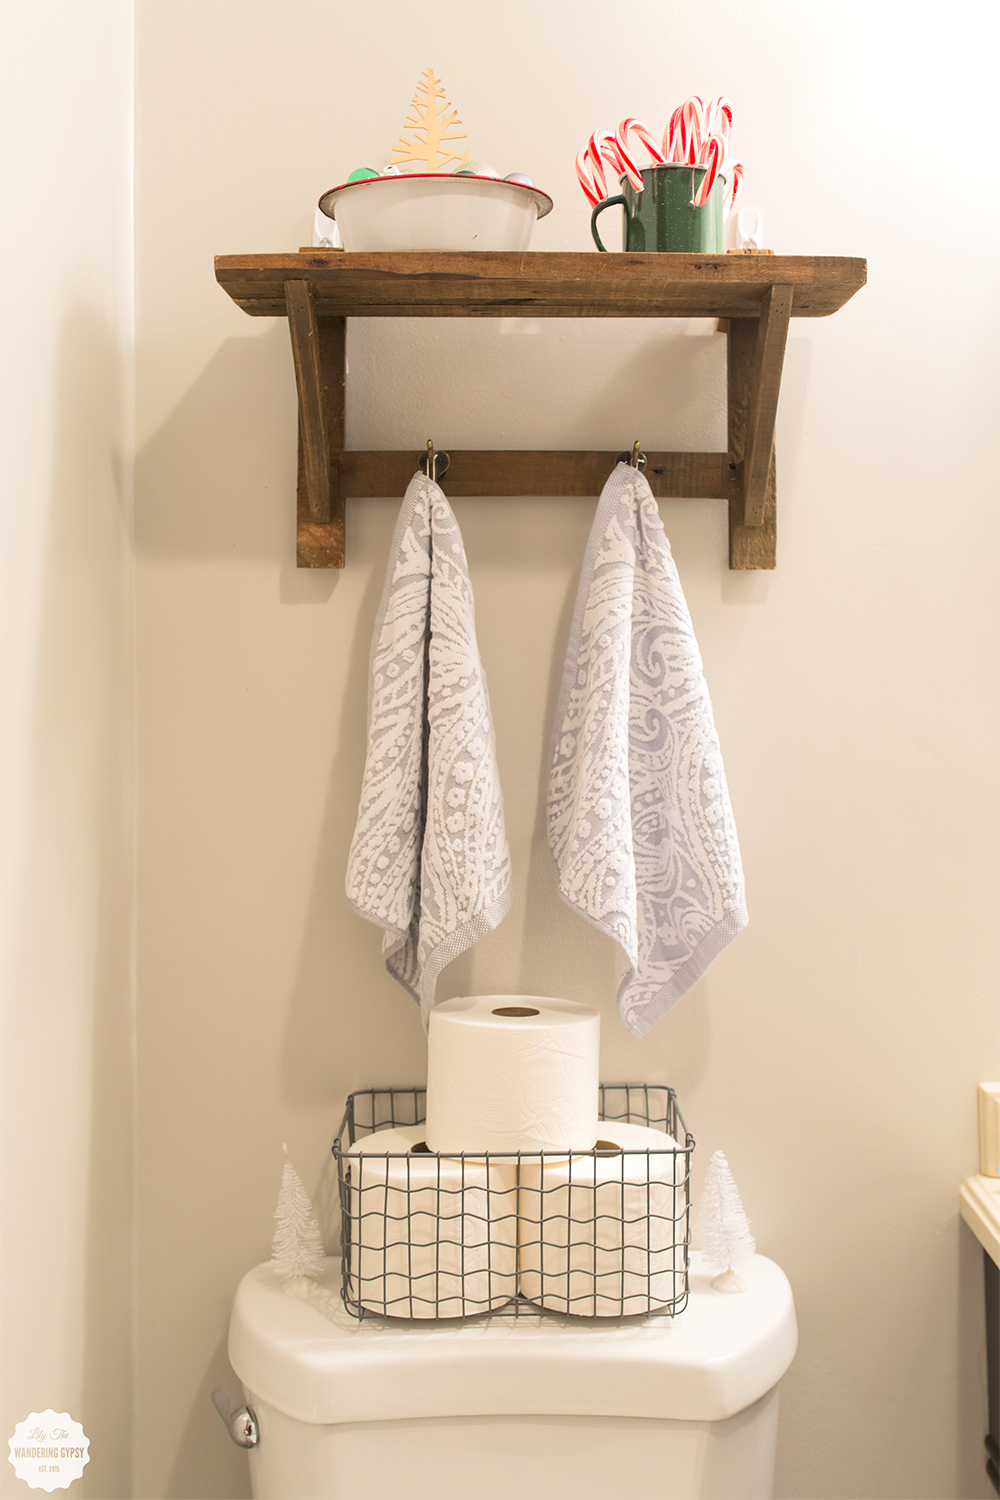 Cute Bathroom Makeover! #QuiltedHoliday